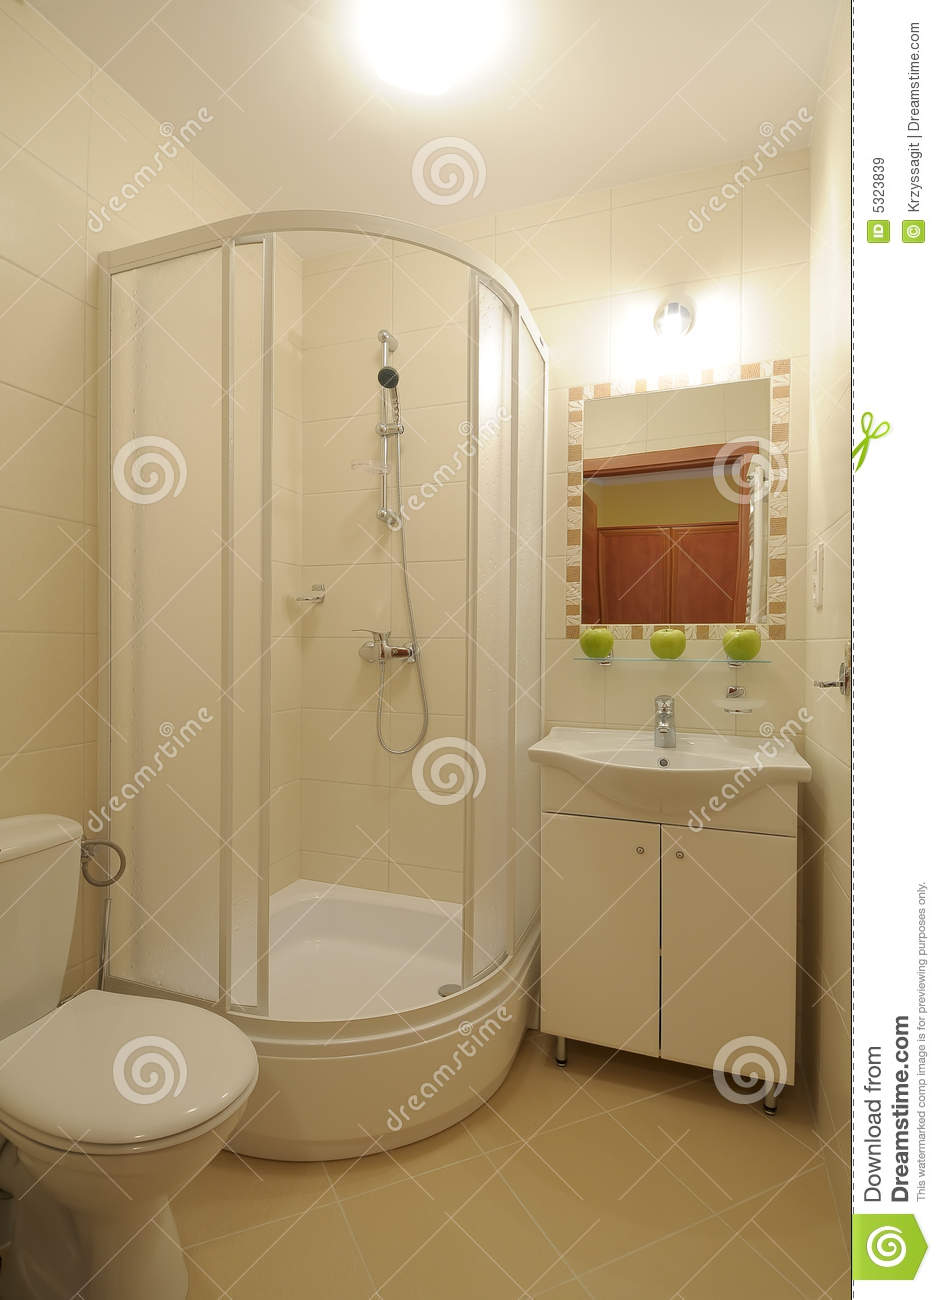 Bathroom Interior Royalty Free Stock Images Image 5323839